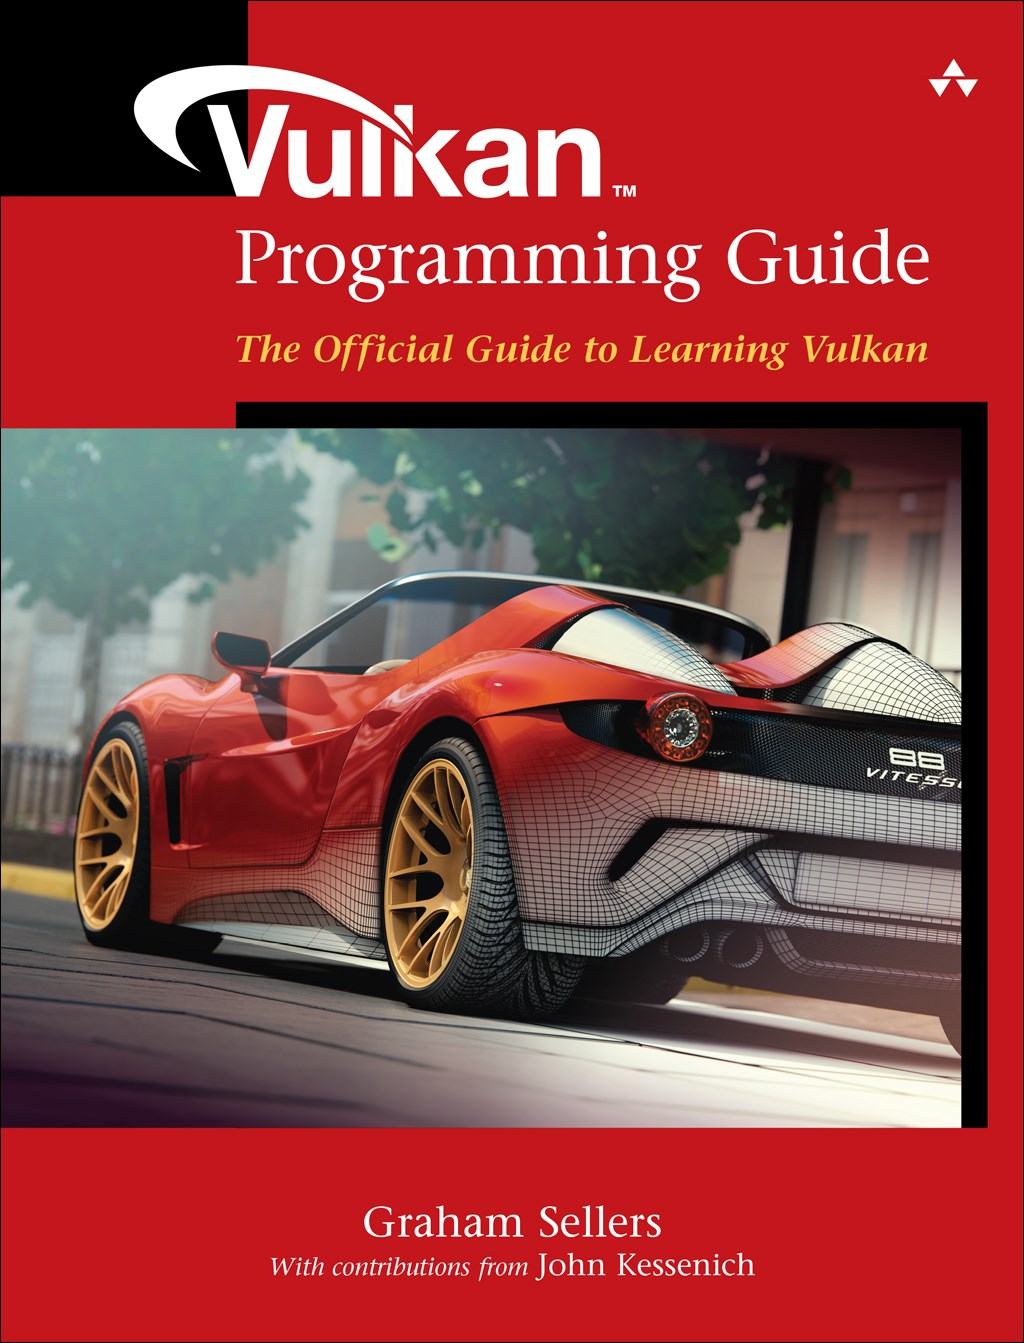 Vulkan Programming Guide: The Official Guide to Learning Vulkan